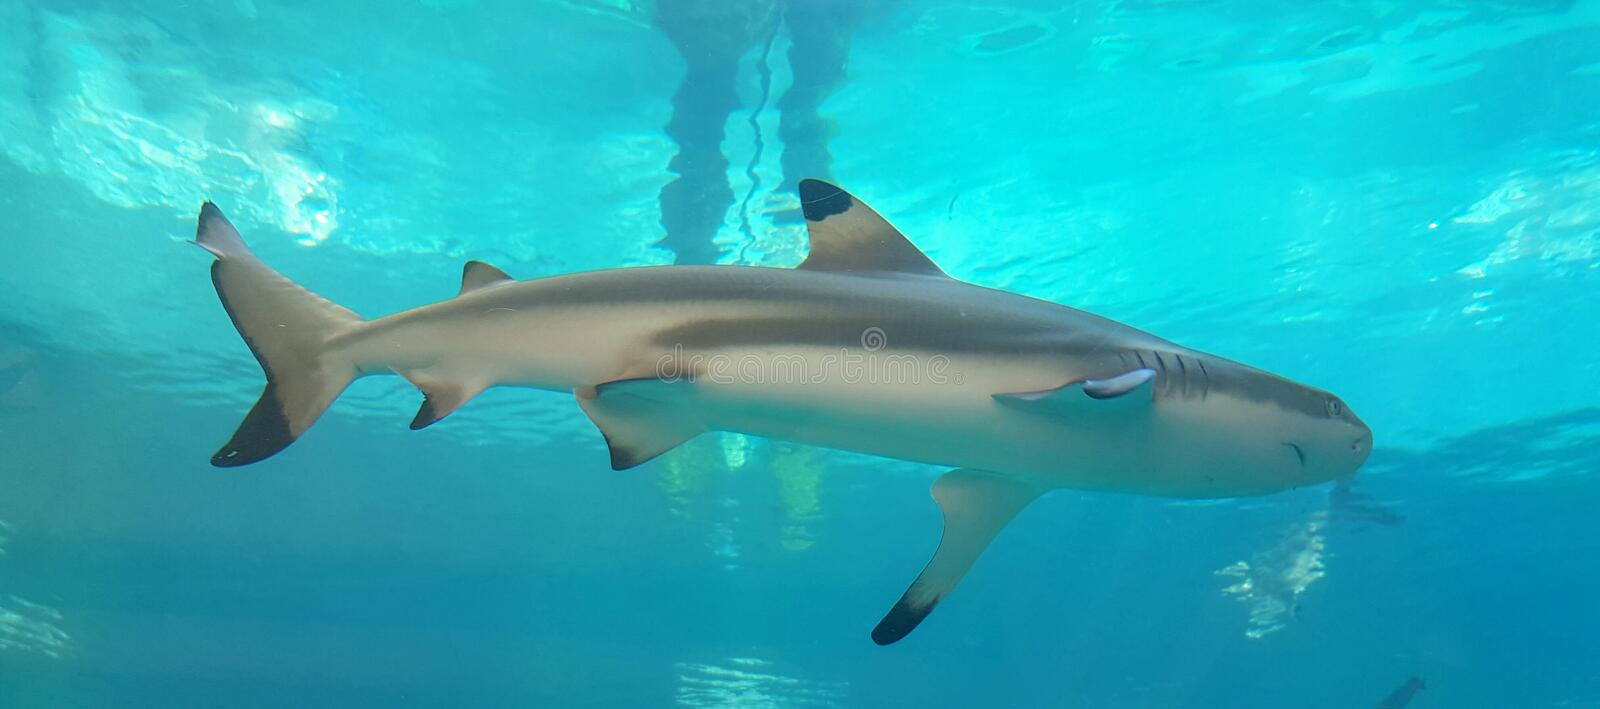 Shark in the water stock photography